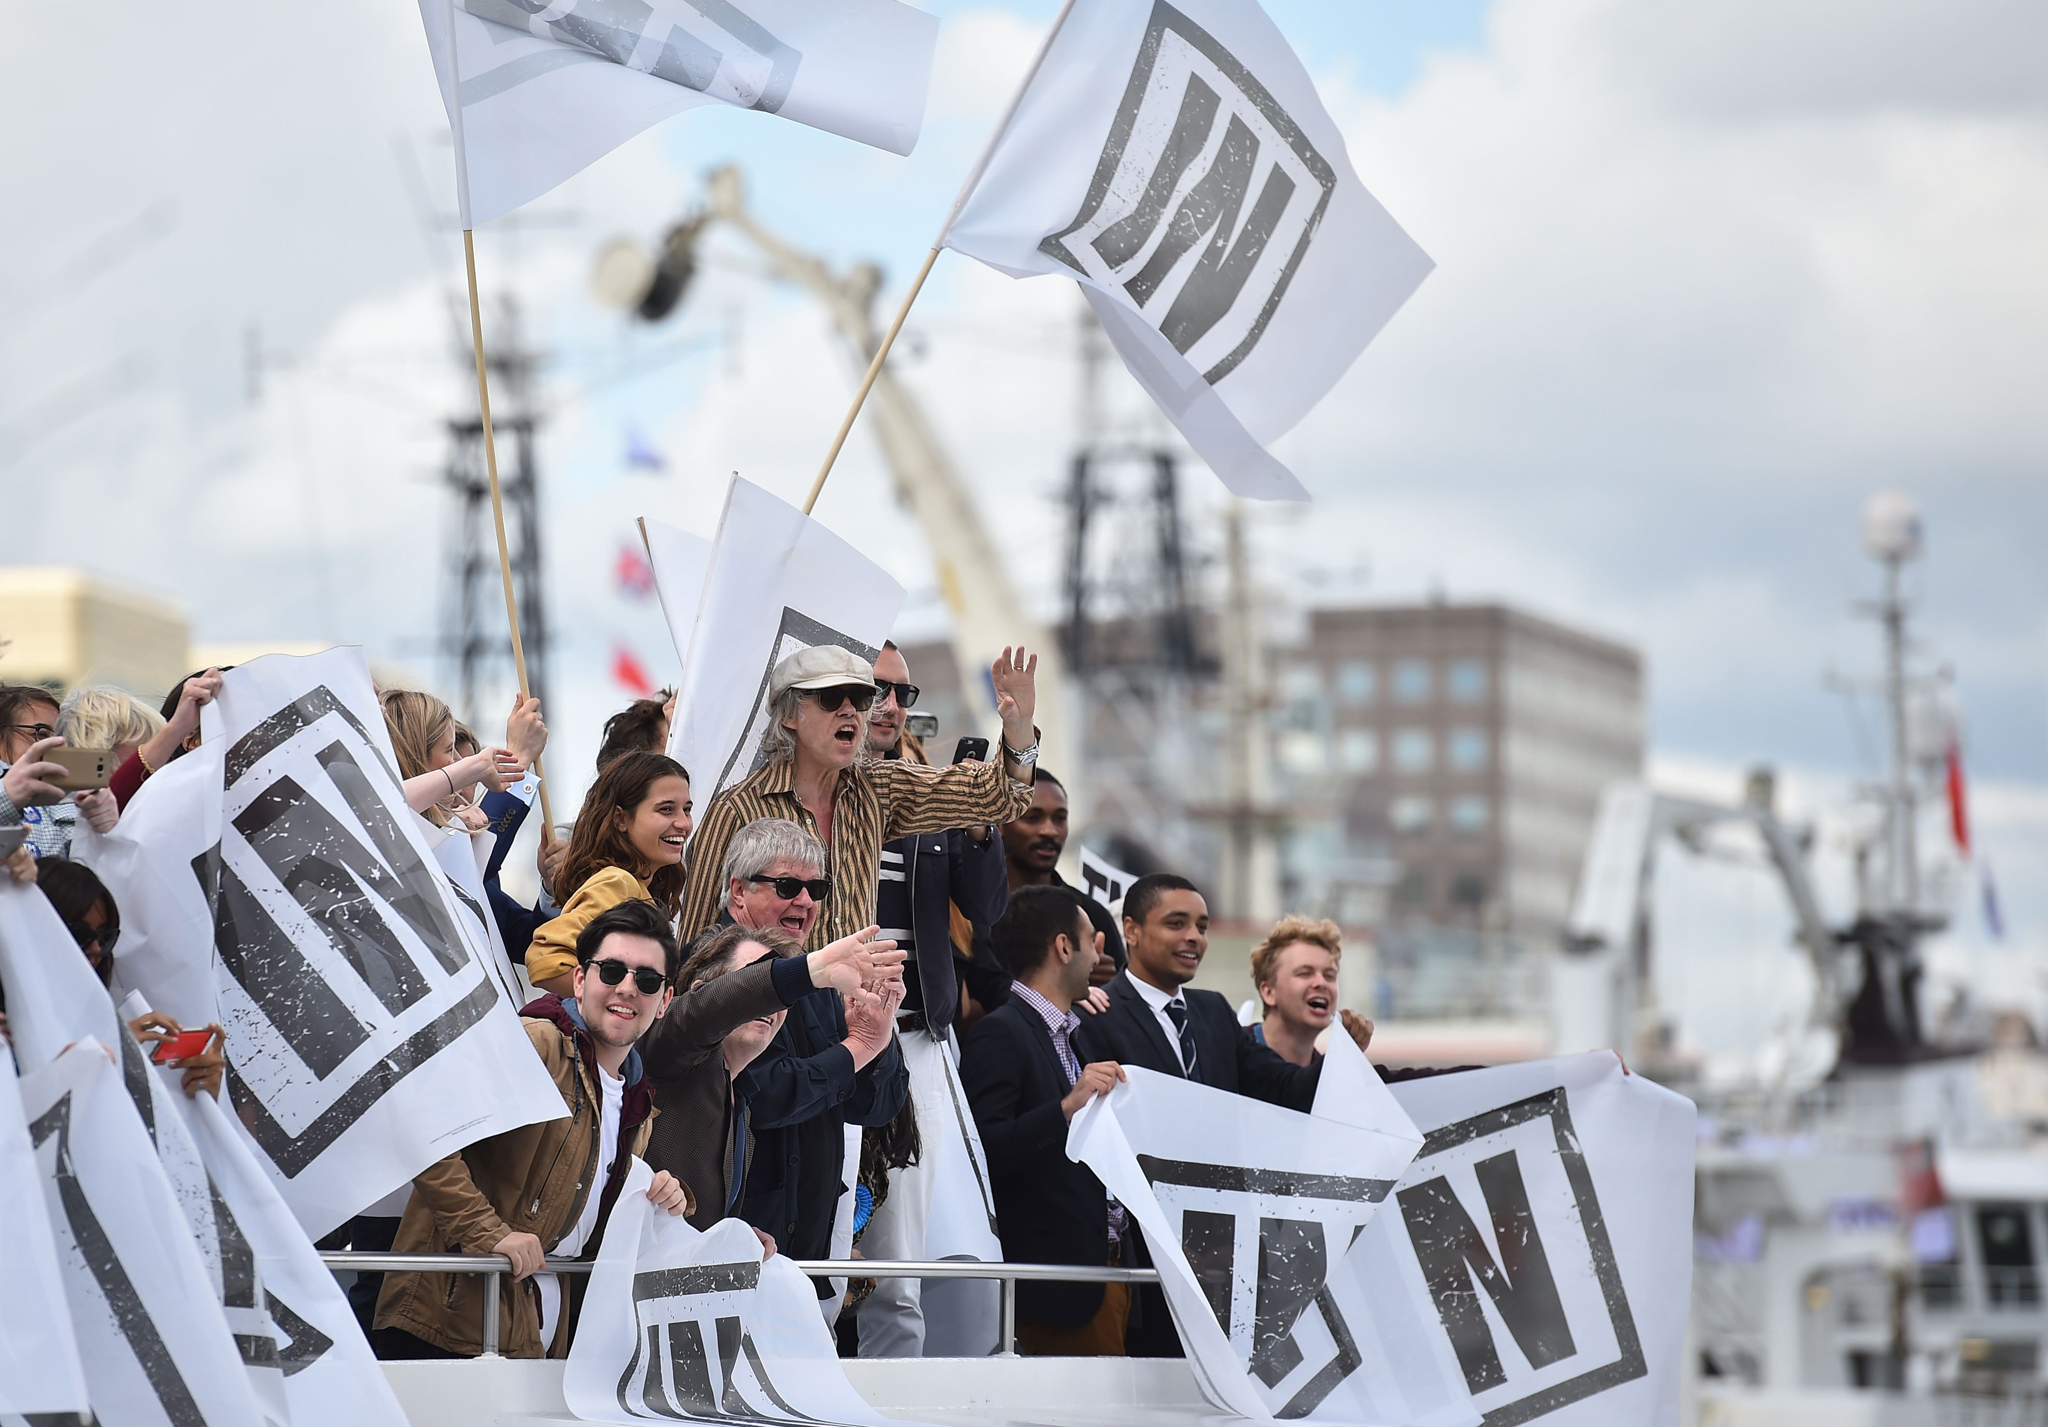 A boat carrying supporters for the Remain in the EU campaign including Sir Bob Geldoff (C) shout and wave at Brexit fishing boats as they sail up the river Thames in central London on June 15, 2016. A Brexit flotilla of fishing boats sailed up the River Thames into London today with foghorns sounding, in a protest against EU fishing quotas by the campaign for Britain to leave the European Union. / AFP PHOTO / BEN STANSALLBEN STANSALL/AFP/Getty Images